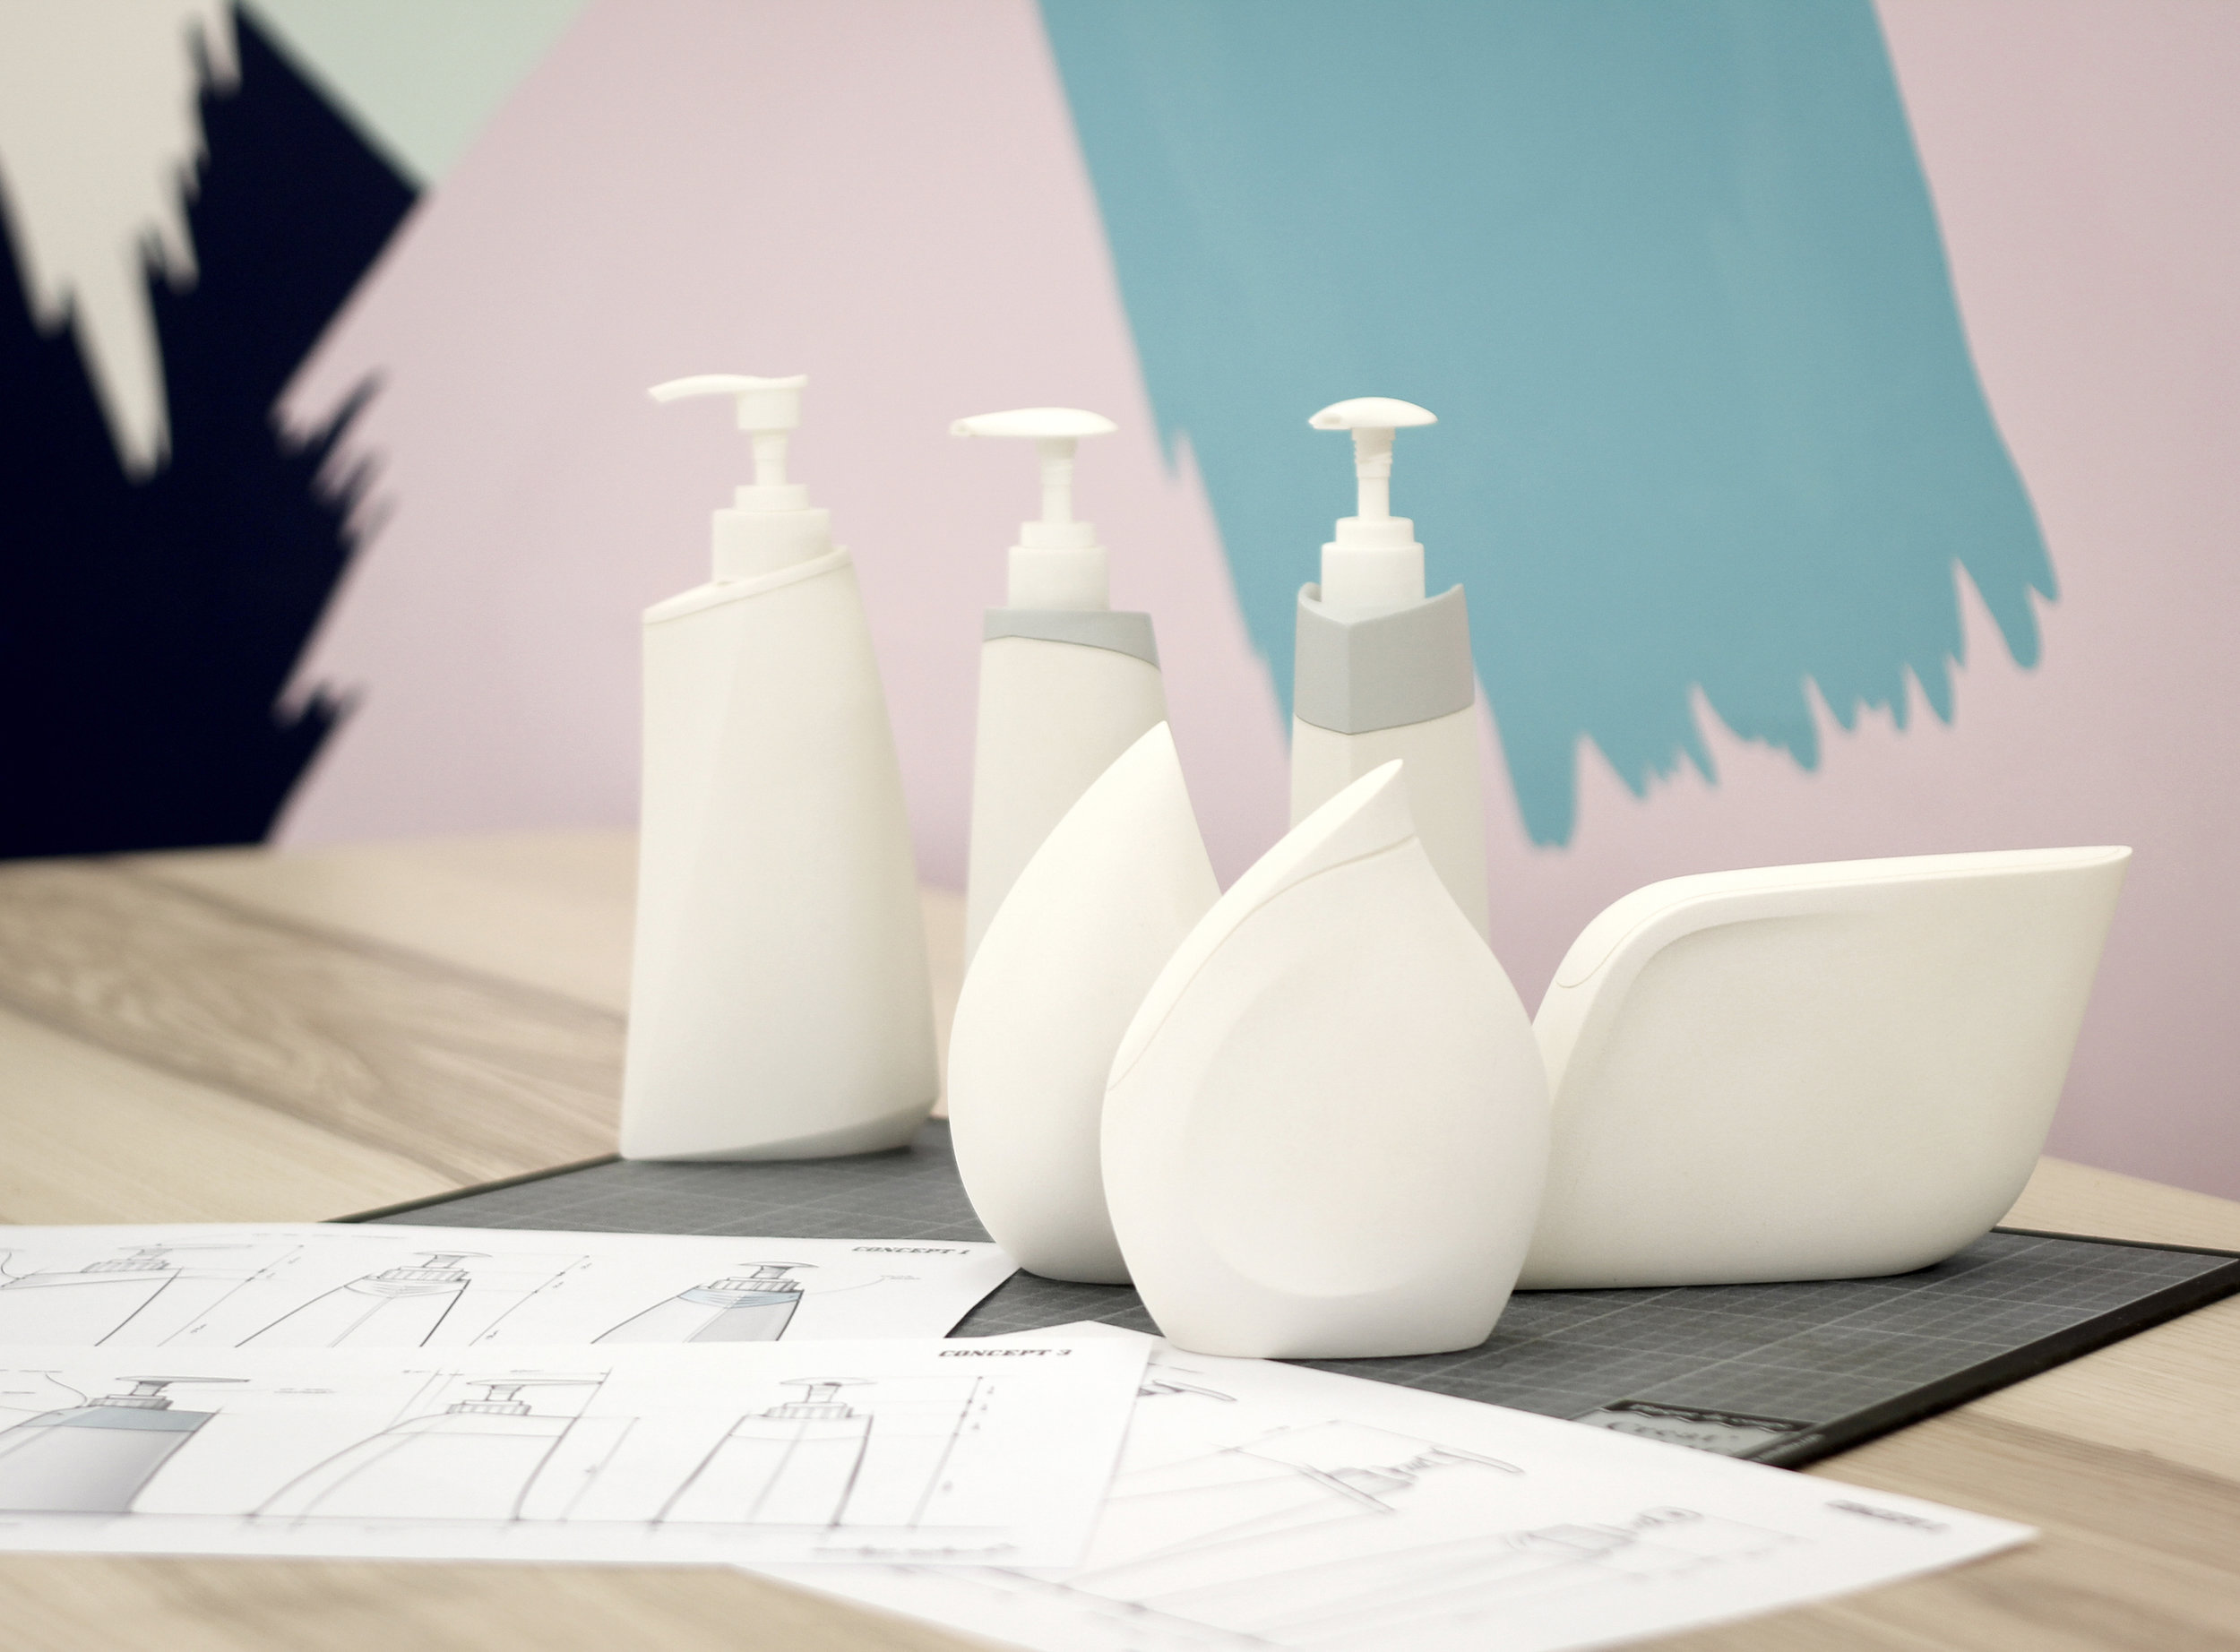 examples of handmade foam models, using agile model making process - 2D to 3D - FMCG packaging concepts